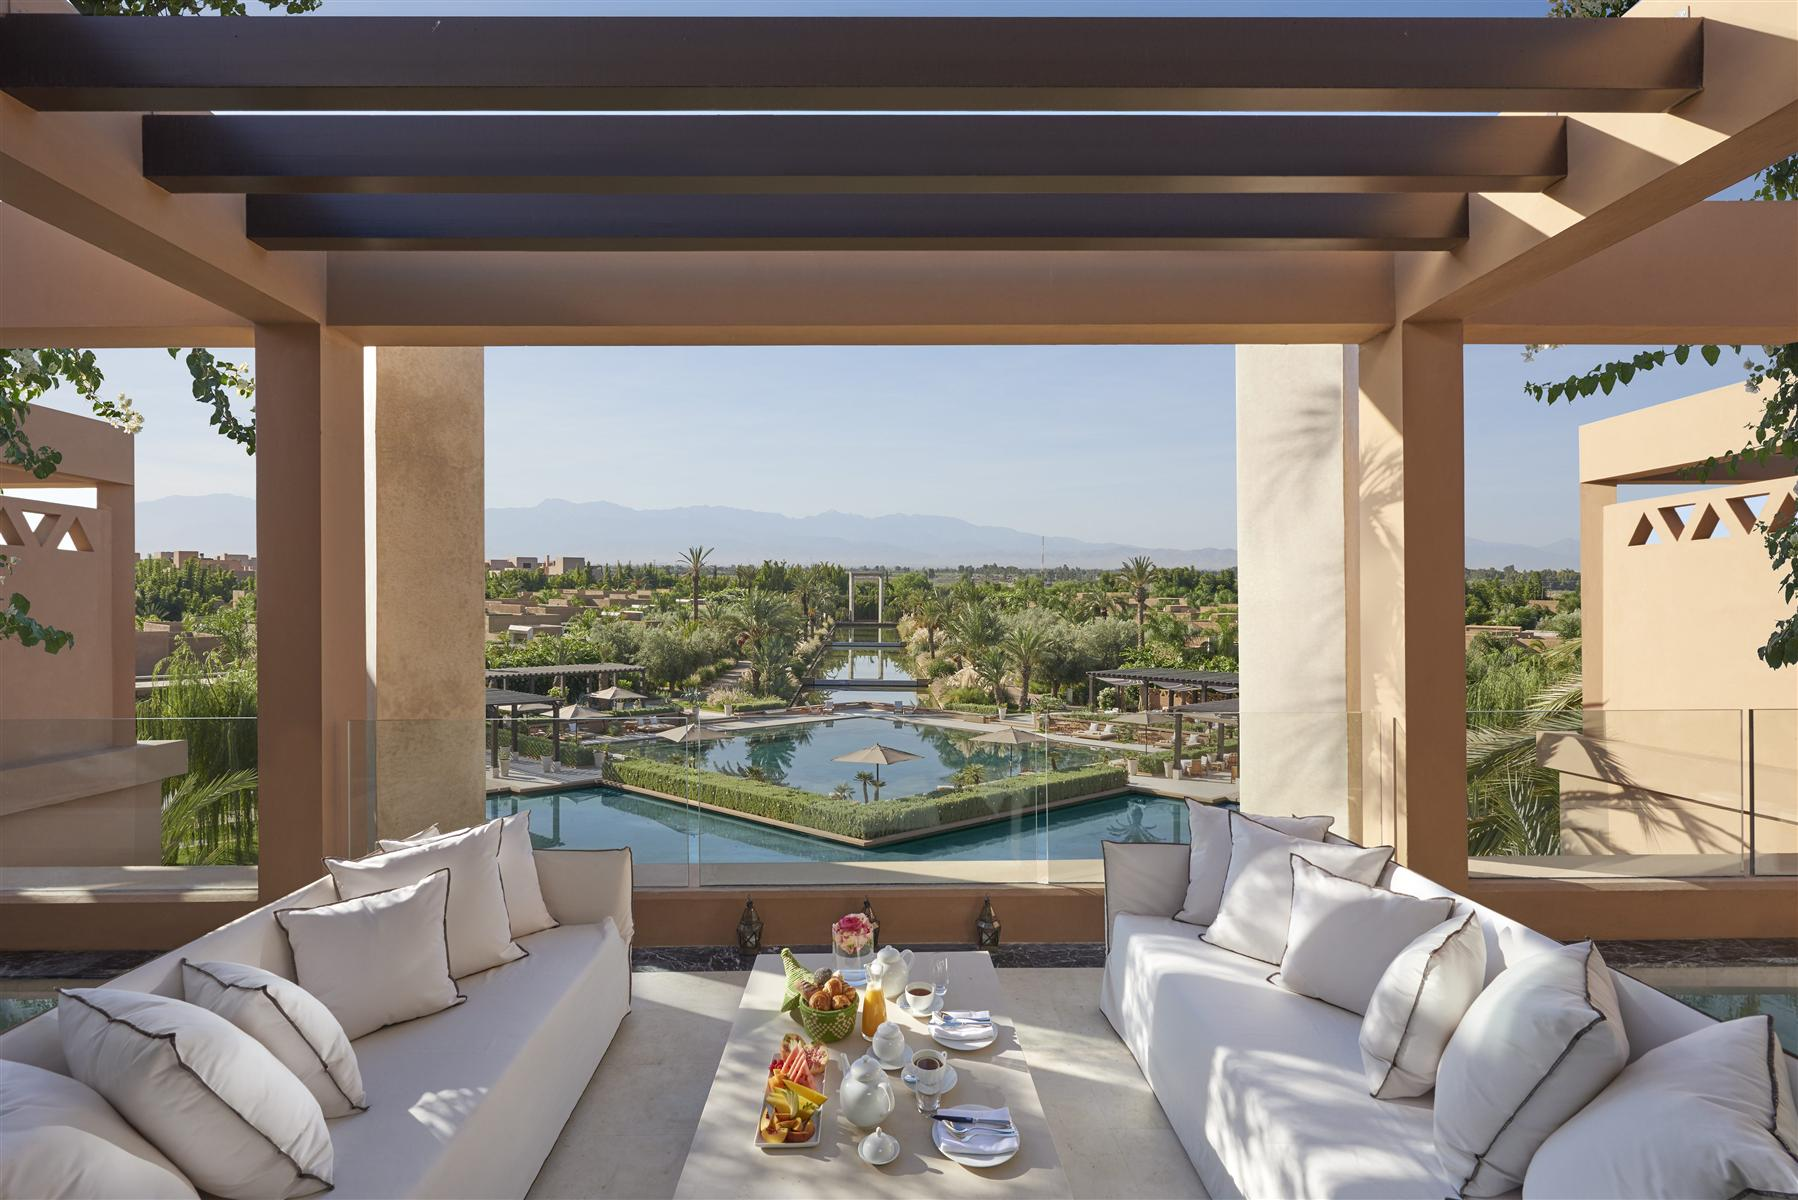 An Oasis in the East: The Mandarin Oriental, Marrakech 5